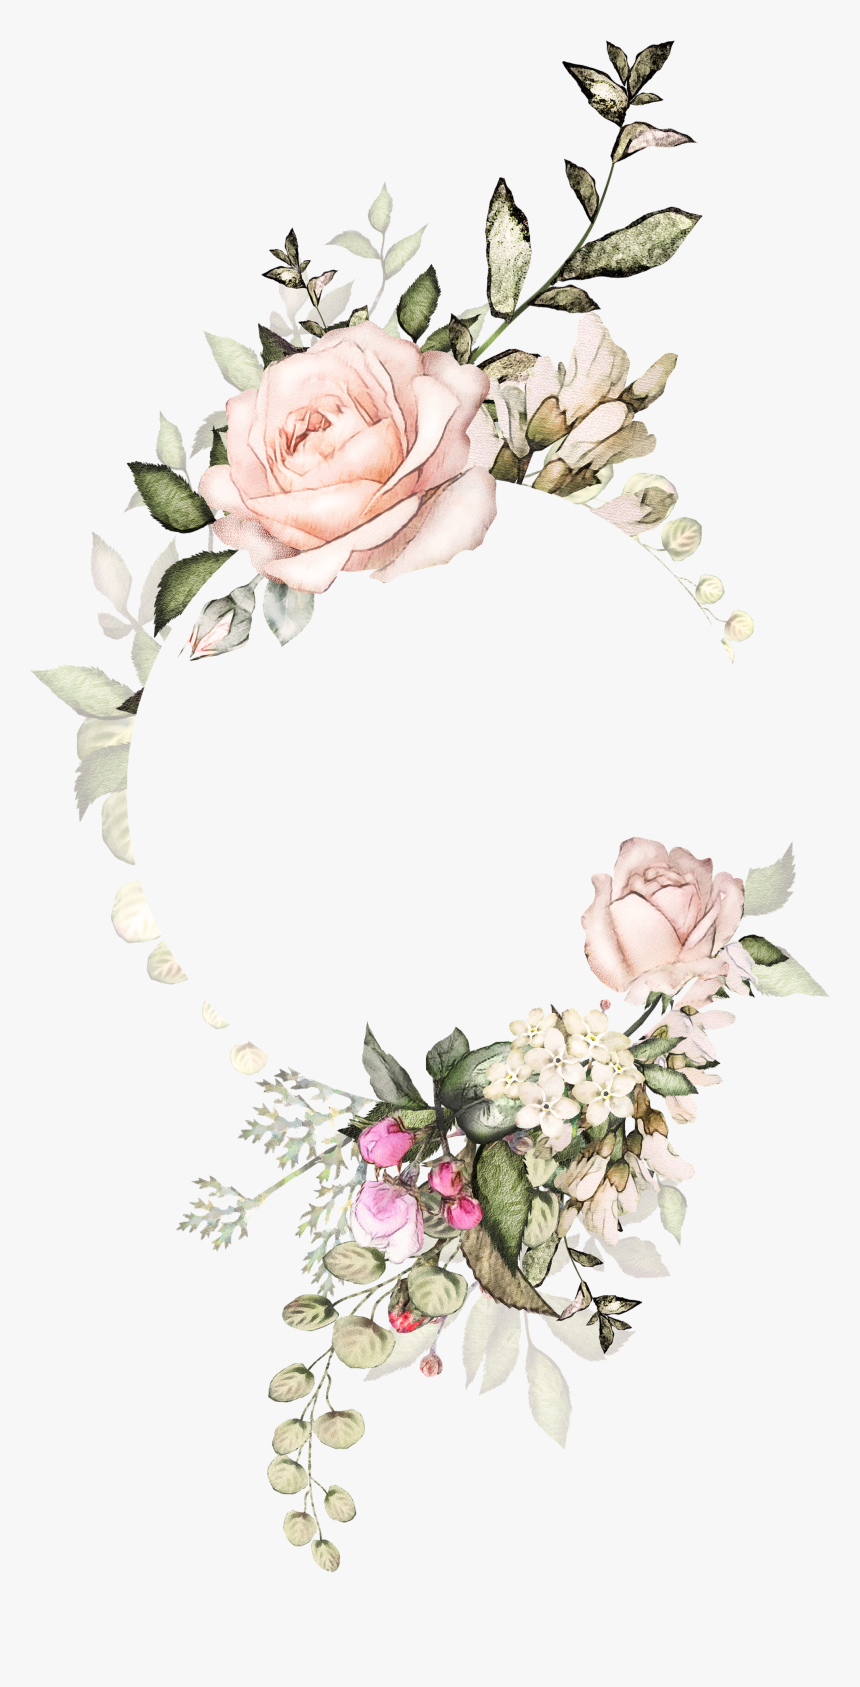 Moldura Floral Flores Tumblr Freetoedit Rose Gold Flower